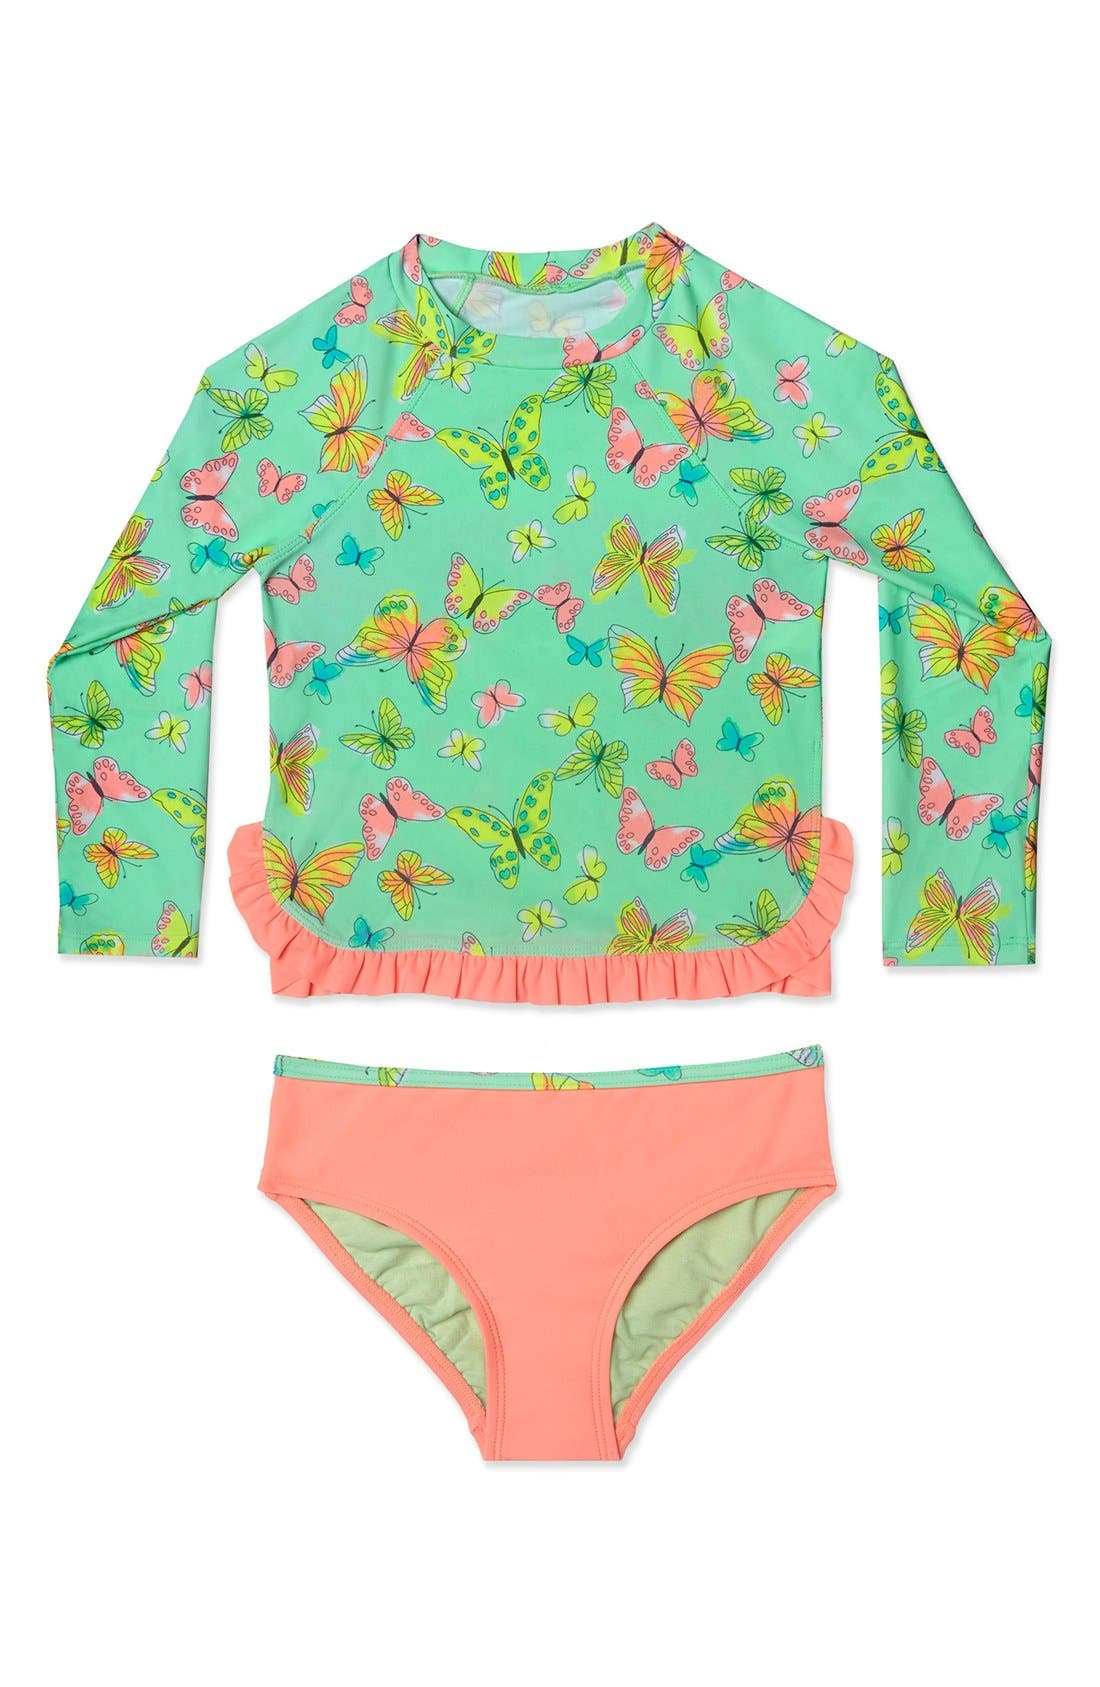 'Butterfly' Two-Piece Rashguard Swimsuit,                         Main,                         color,